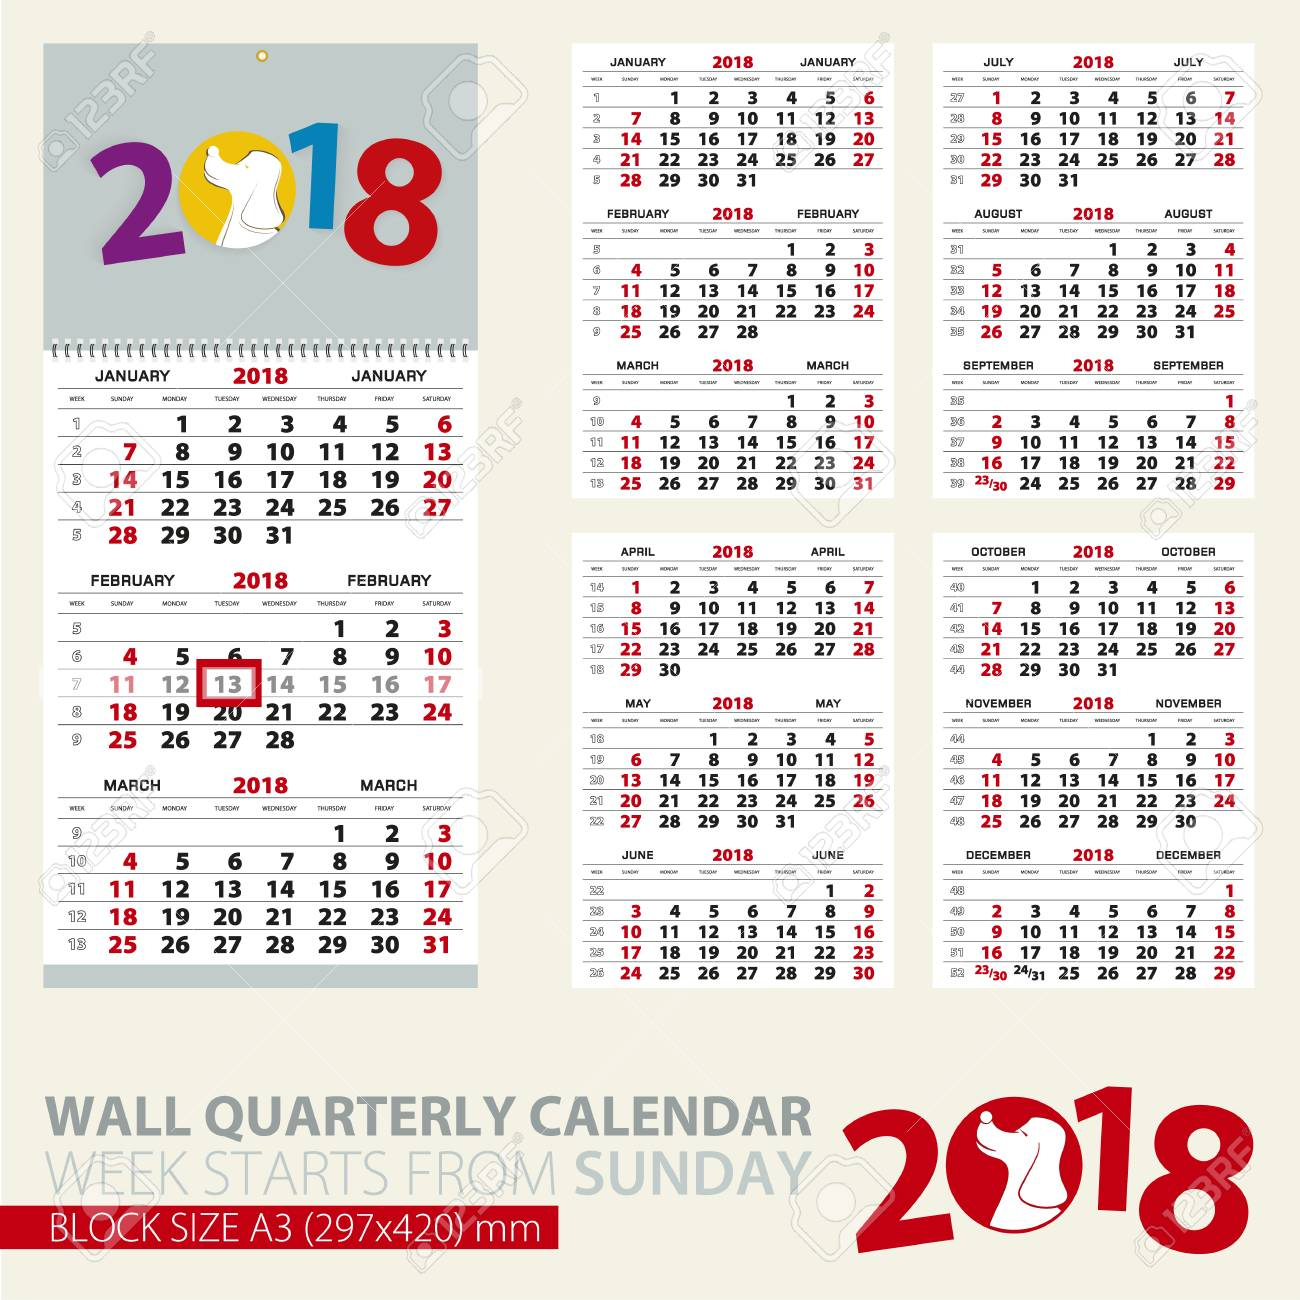 print template of wall quarterly calendar for 2018 year year of the dog block